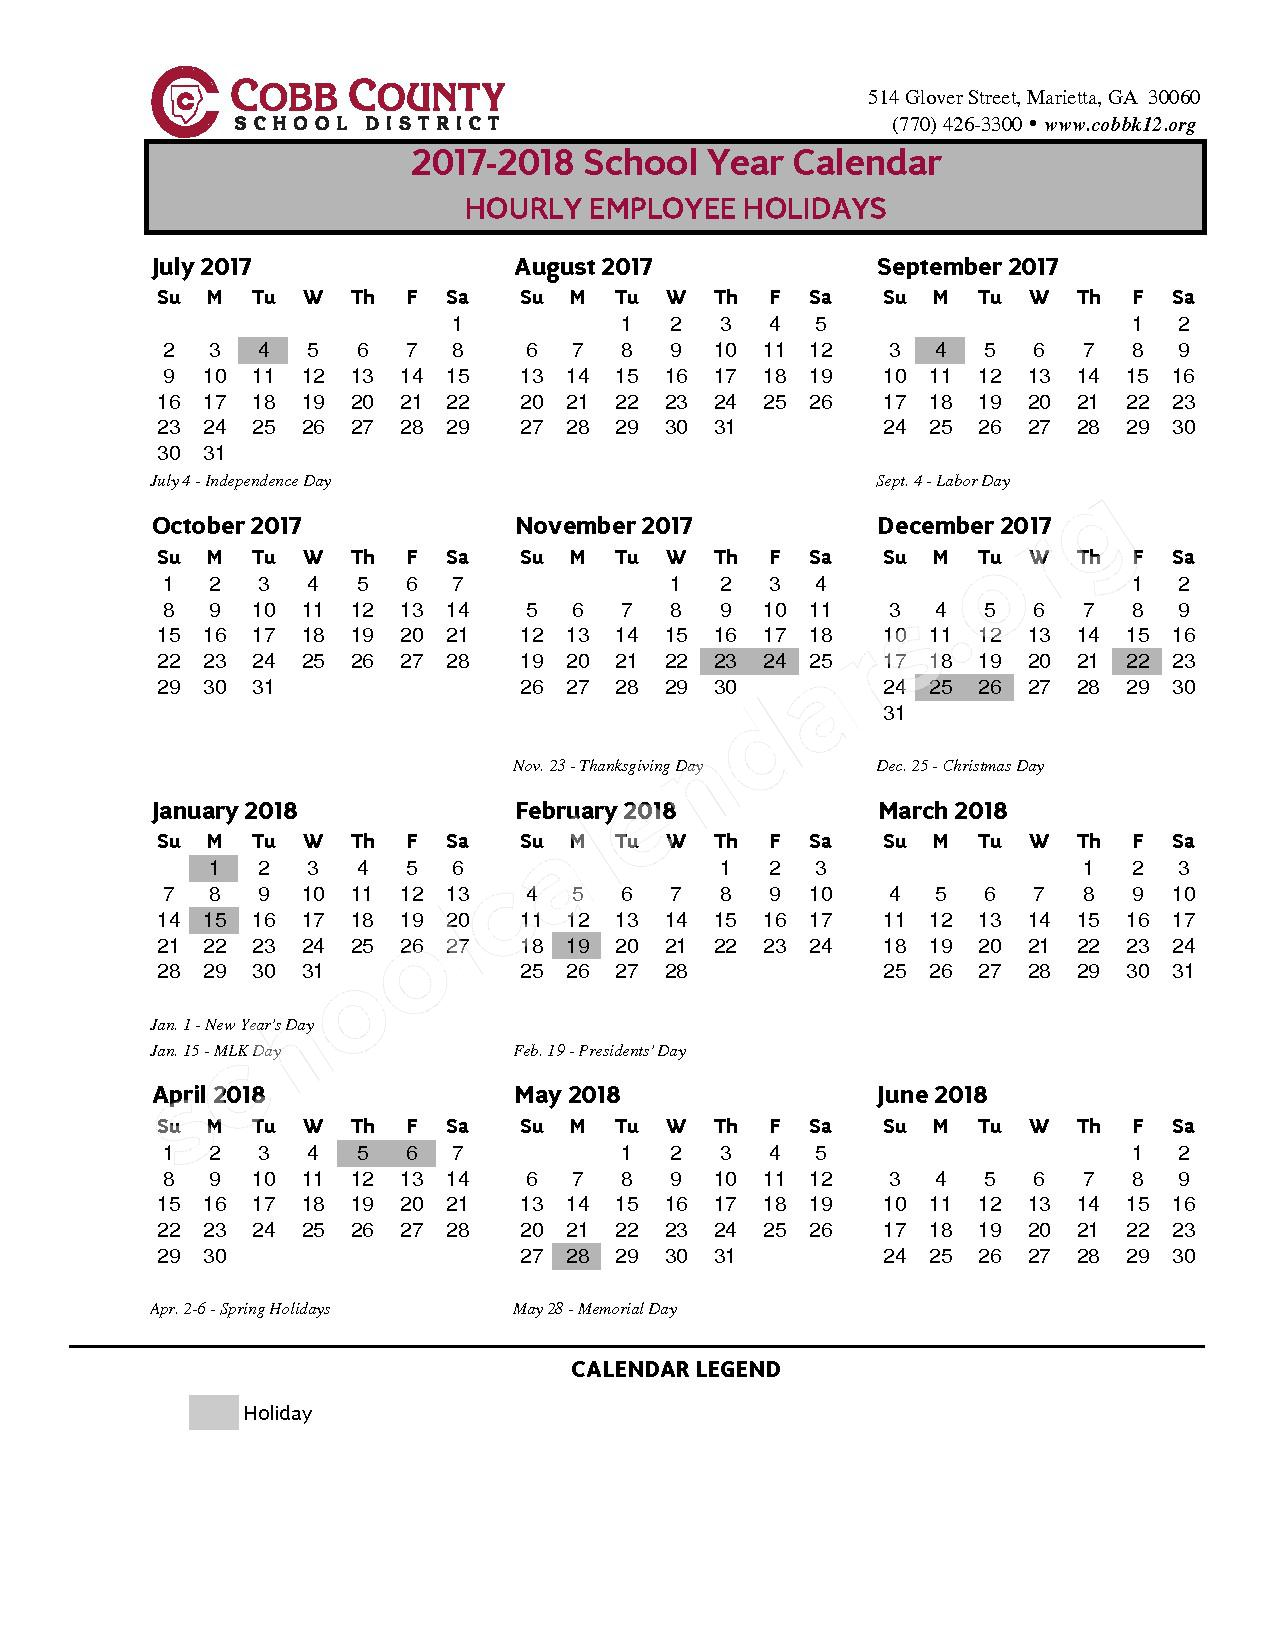 2017 - 2018 Hourly Employee Holidays – Cobb County School District – page 1